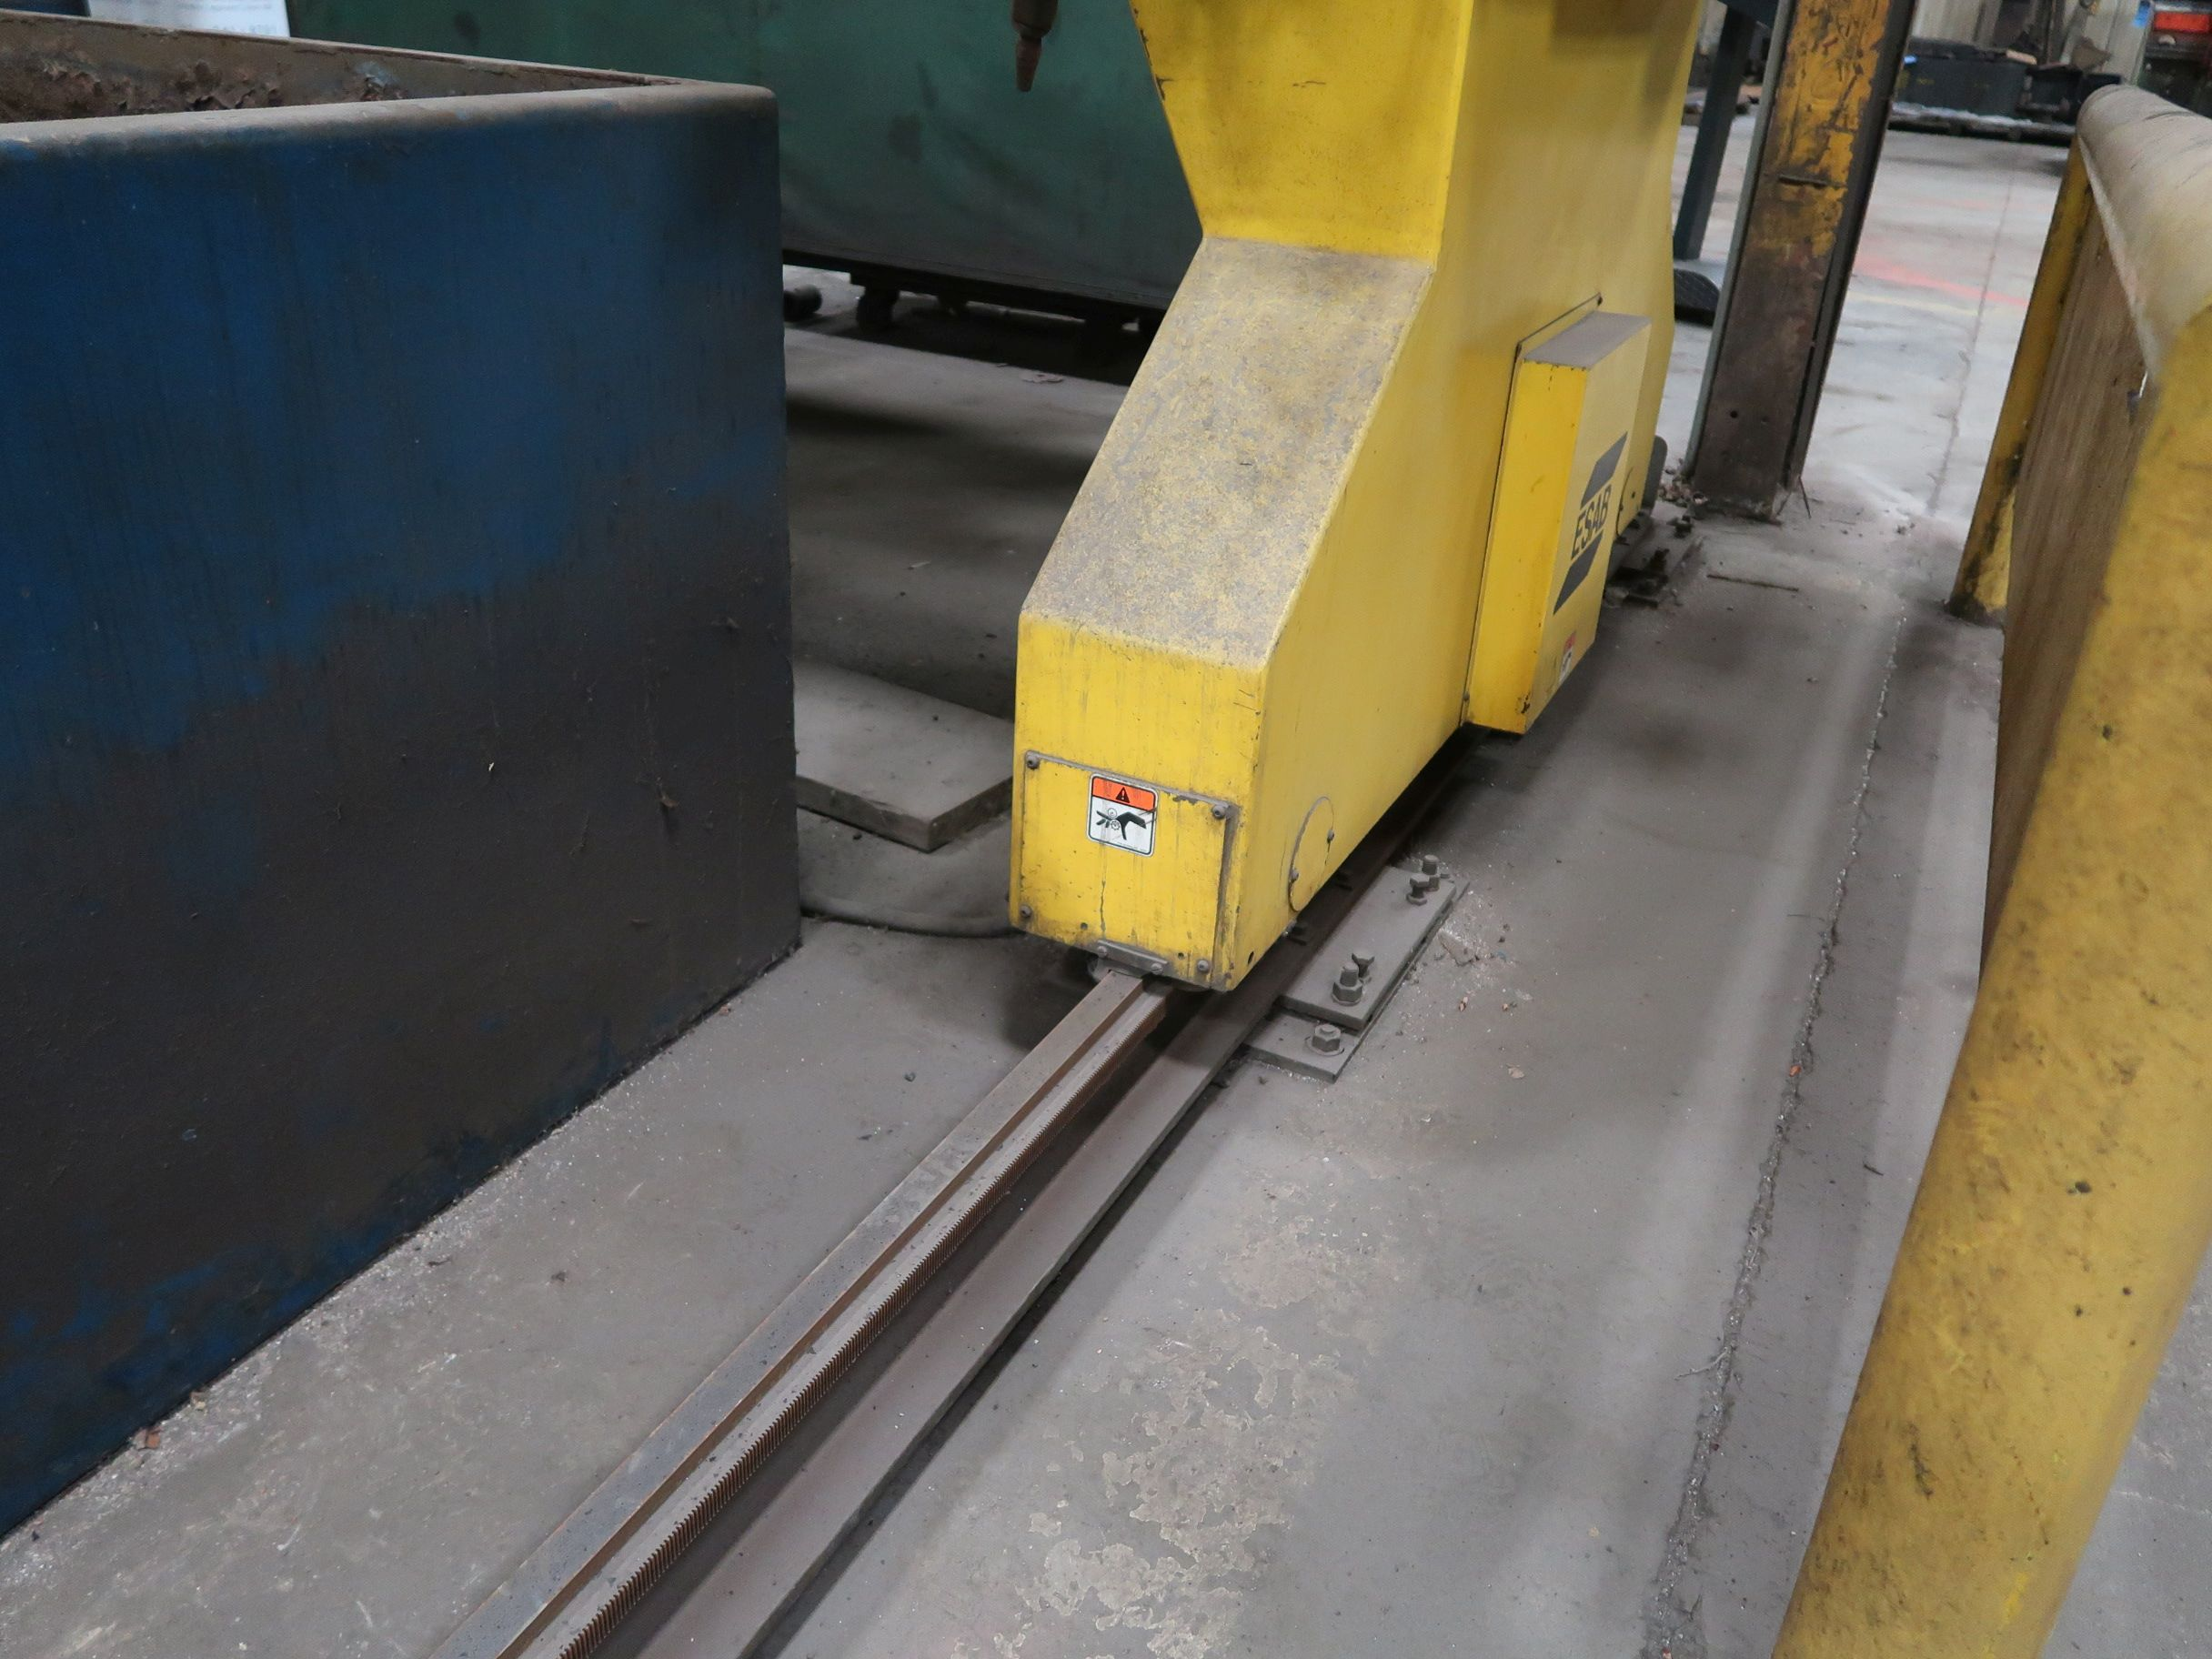 12' X 40' ESAB MODEL AVENGER 1-12 VISION PLASMA TABLE W/ BURNY 10 CONTROL; S/N 0560986386, UPDATED - Image 15 of 23